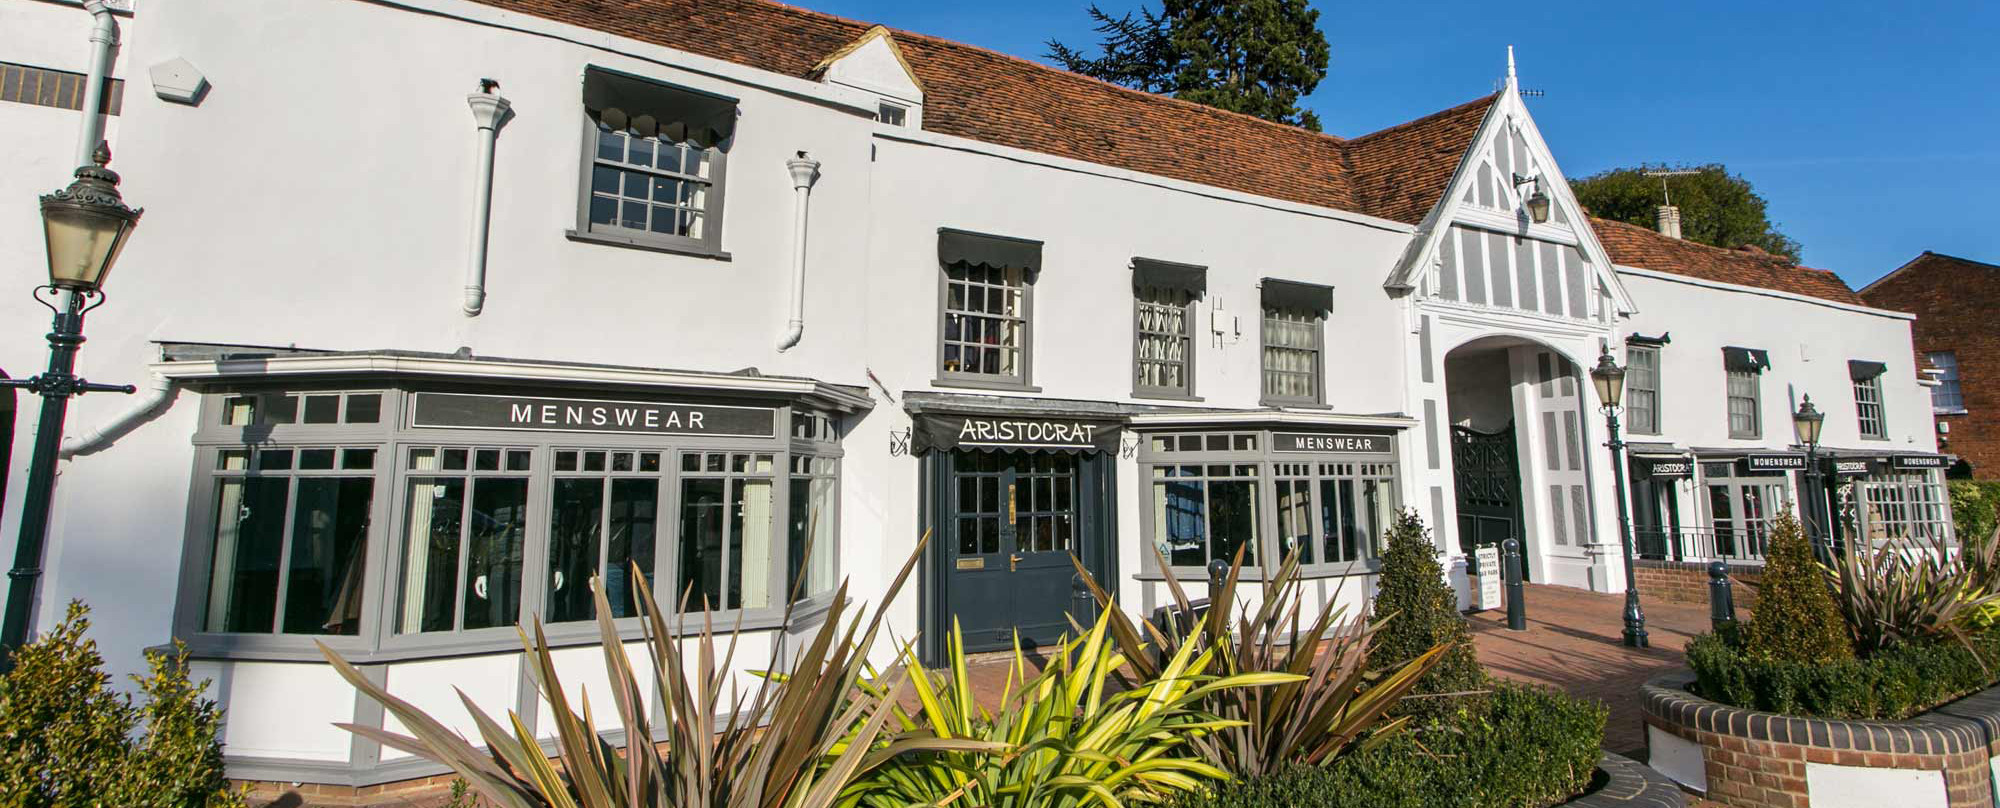 Aristocrat Store, Bishop's Stortford